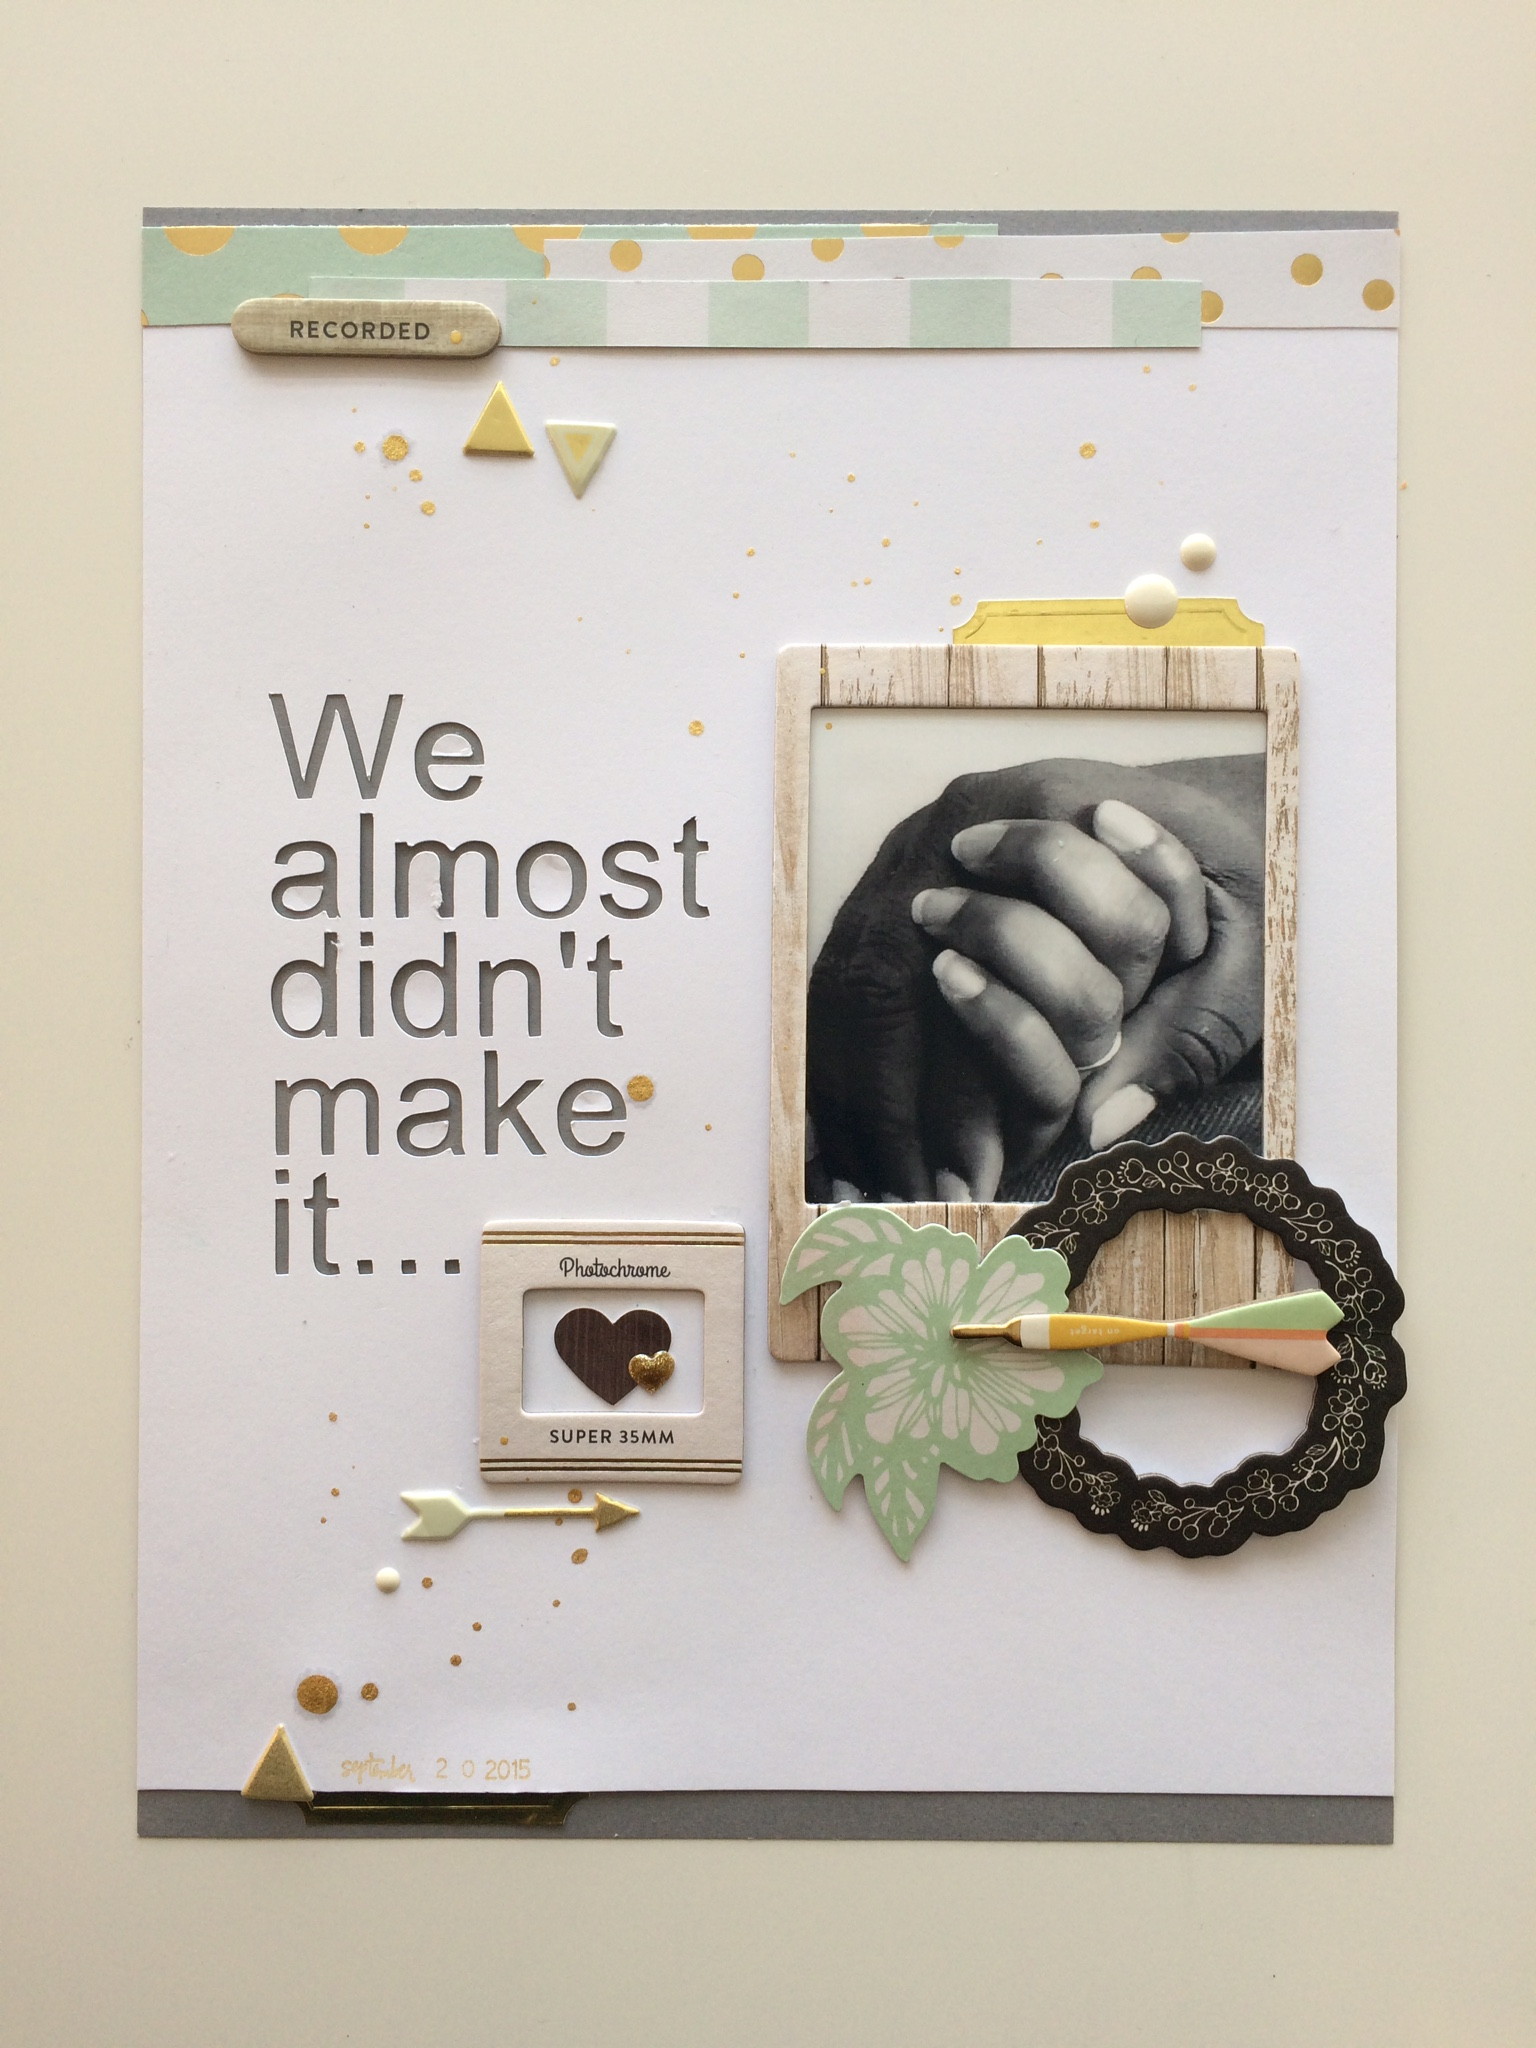 How to make scrapbook for husband - And To Think That We Almost Didn T Make It Gives This Particular Anniversary More Meaning We Have Come So Far And Continue To Have A